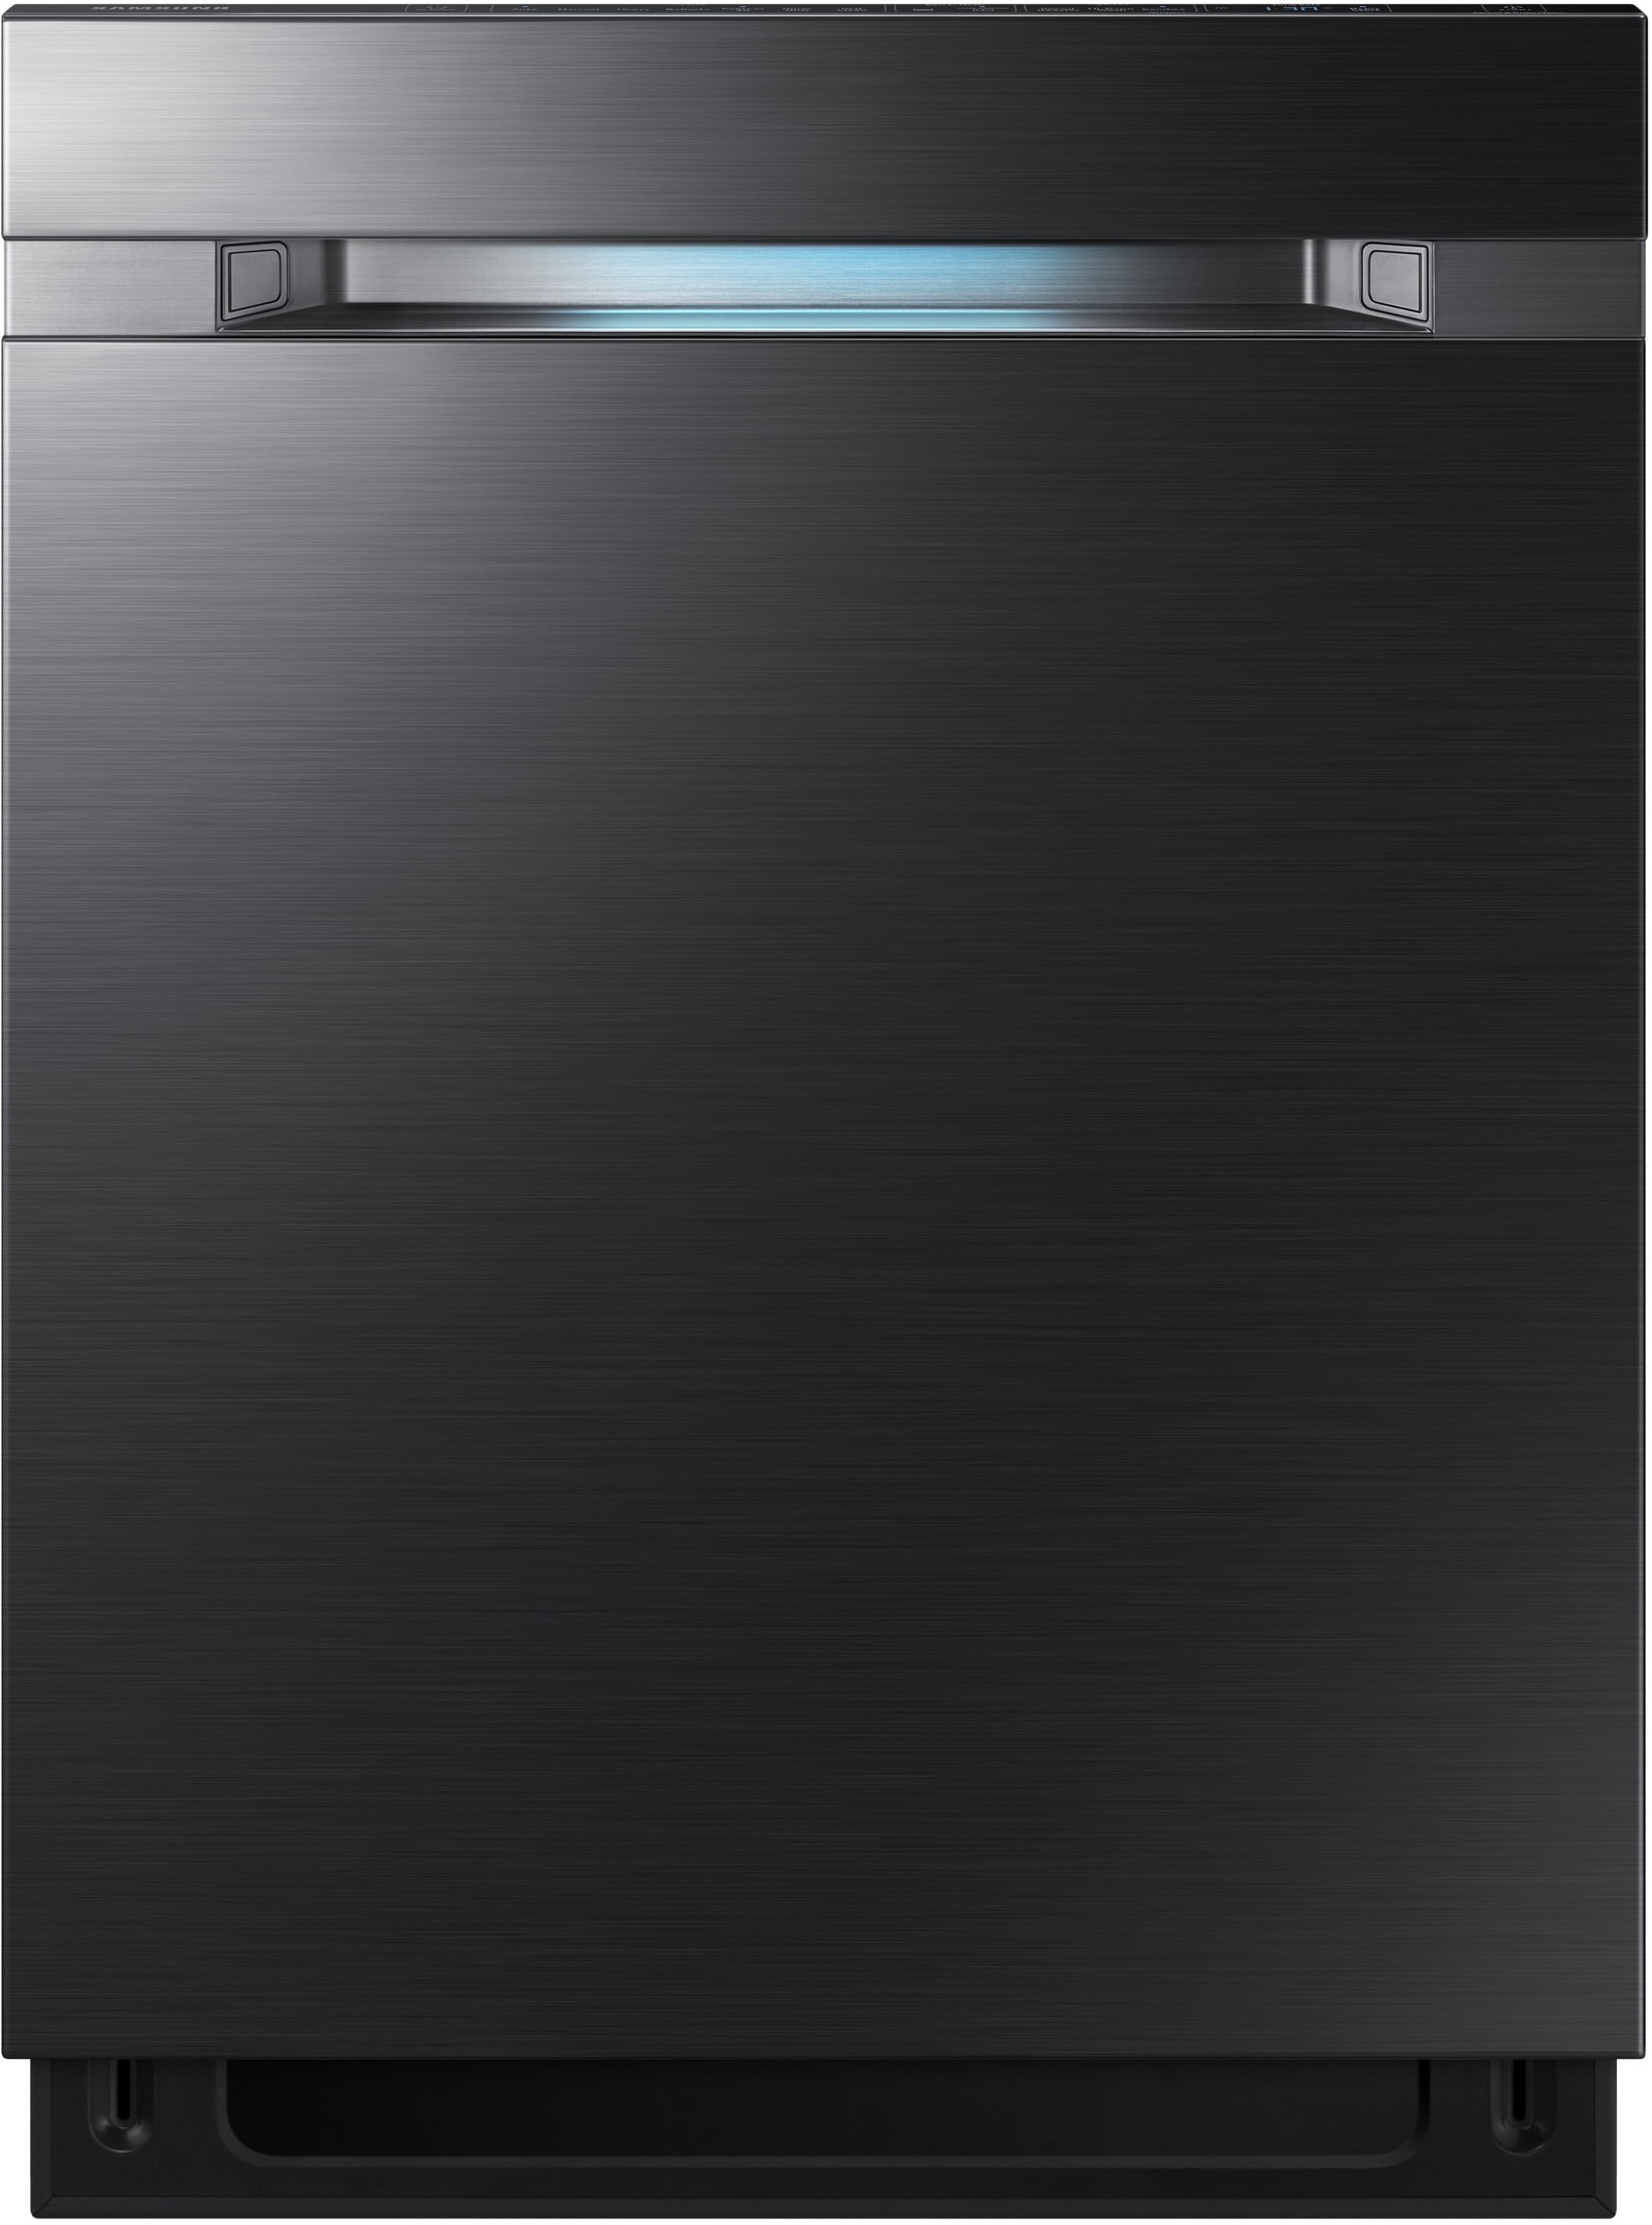 Samsung Dw80m9550ug Fully Integrated Dishwasher With